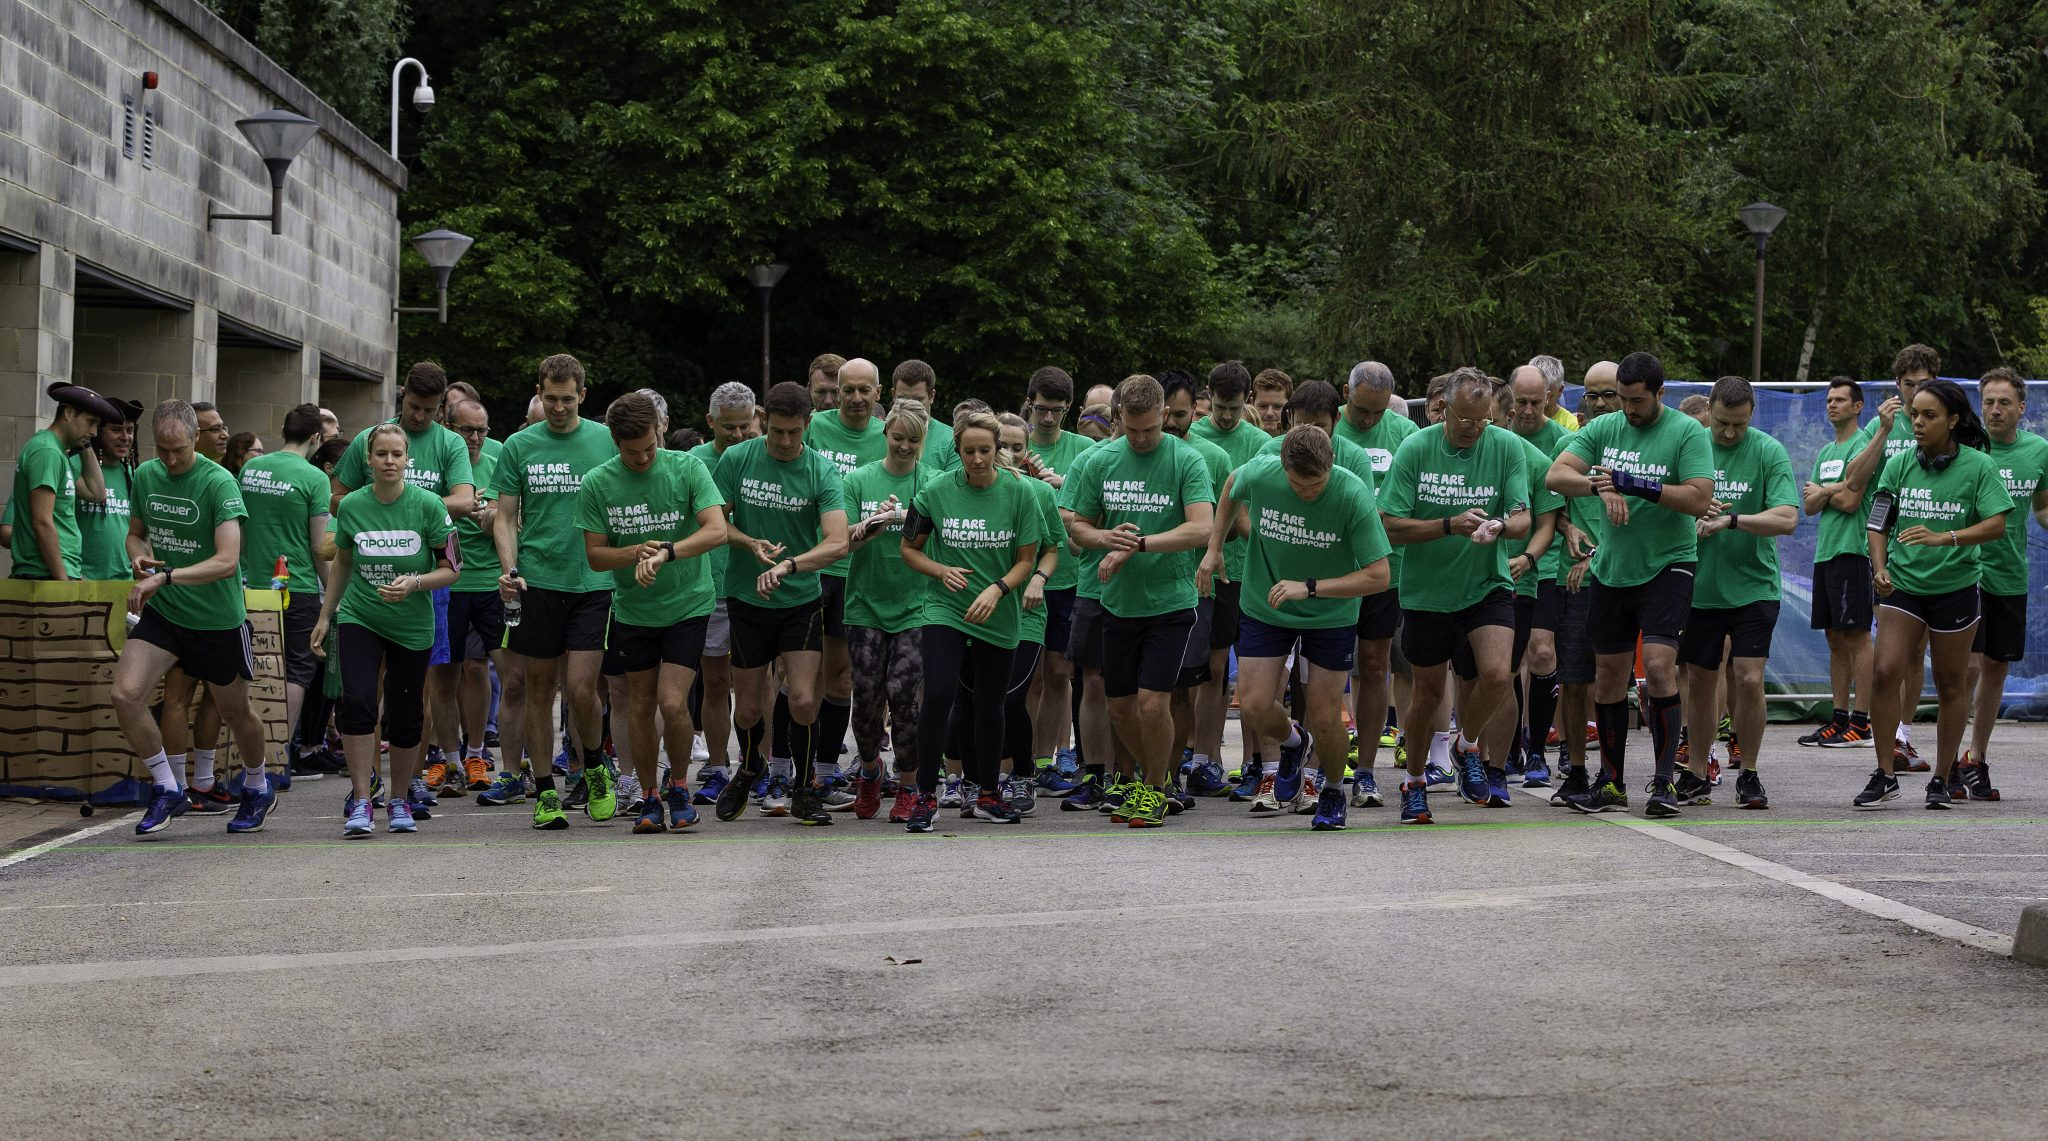 Sponsored run raises thousands for Macmillan Cancer Support